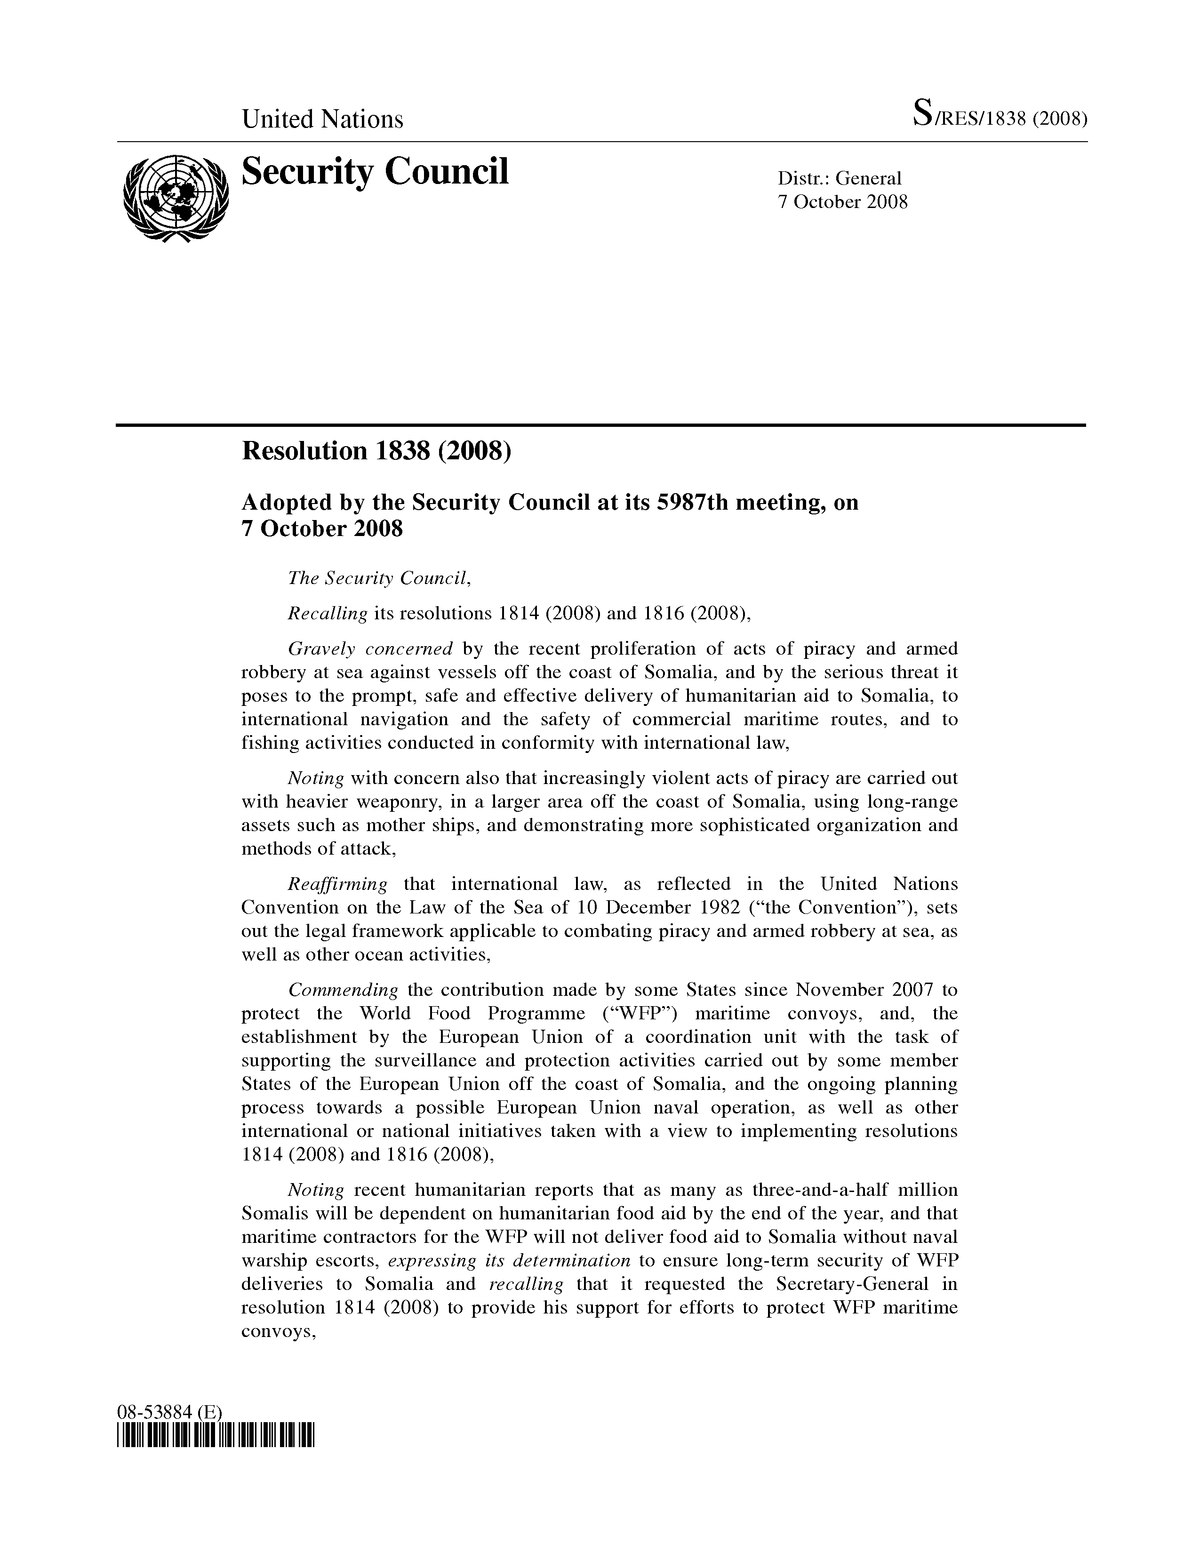 United Nations Security Council Resolution 1838